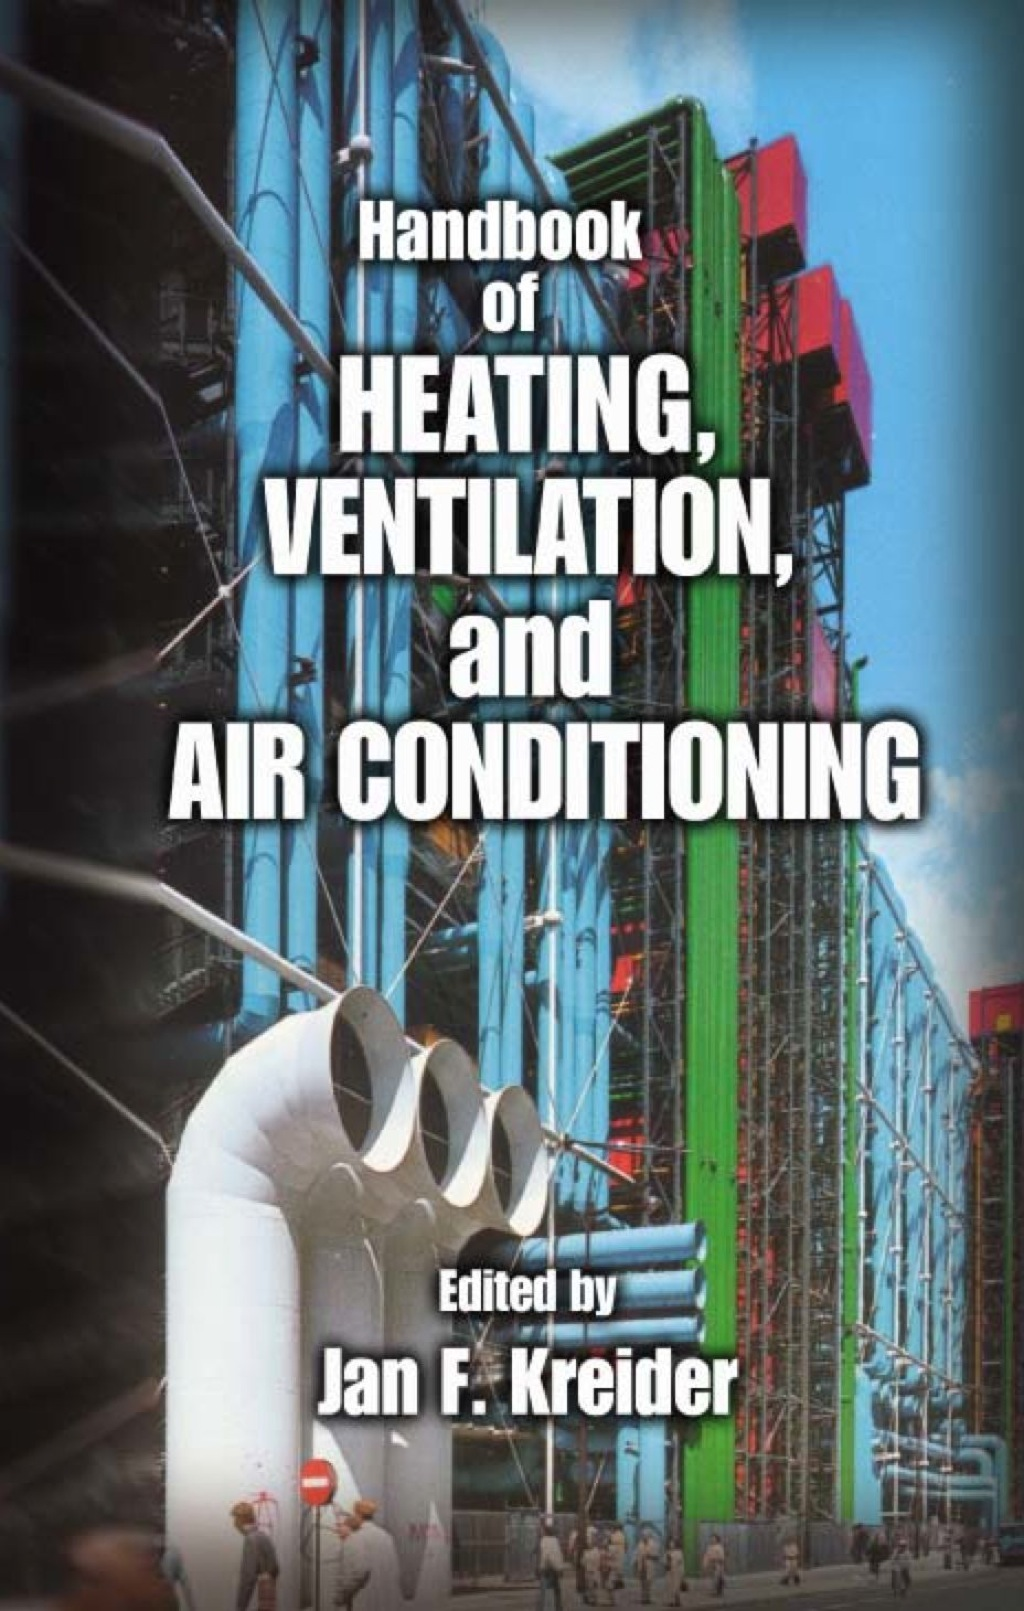 Handbook of Heating, Ventilation, and Air Conditioning (ebook) eBooks